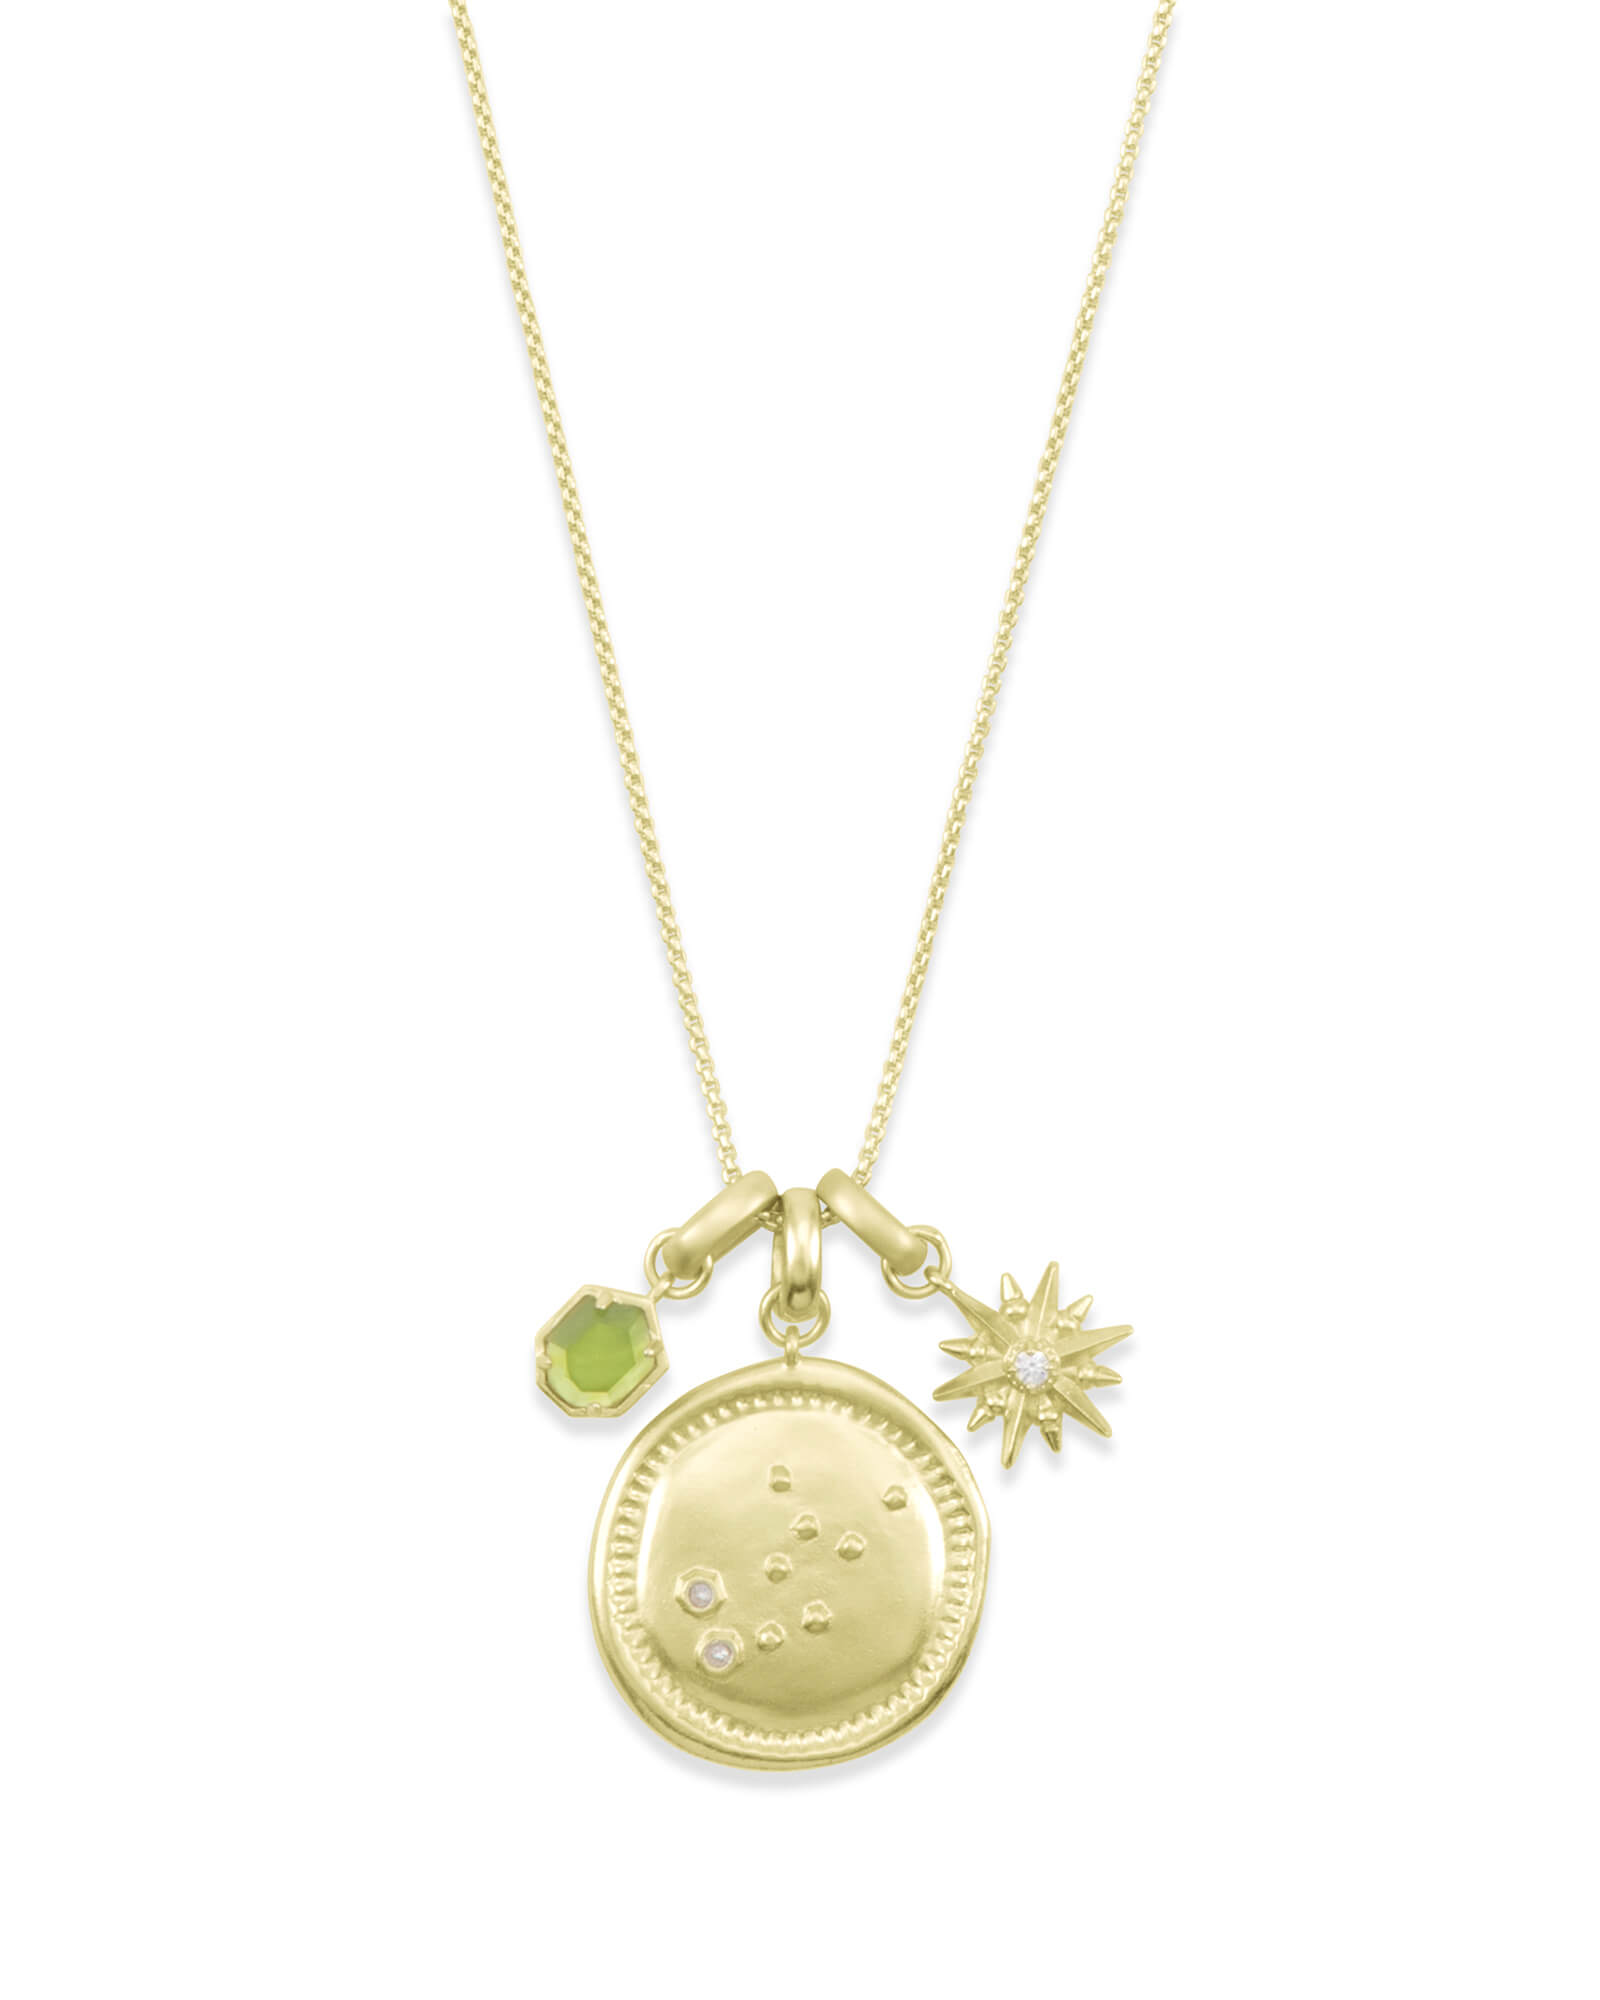 August Virgo Charm Necklace Set in Gold